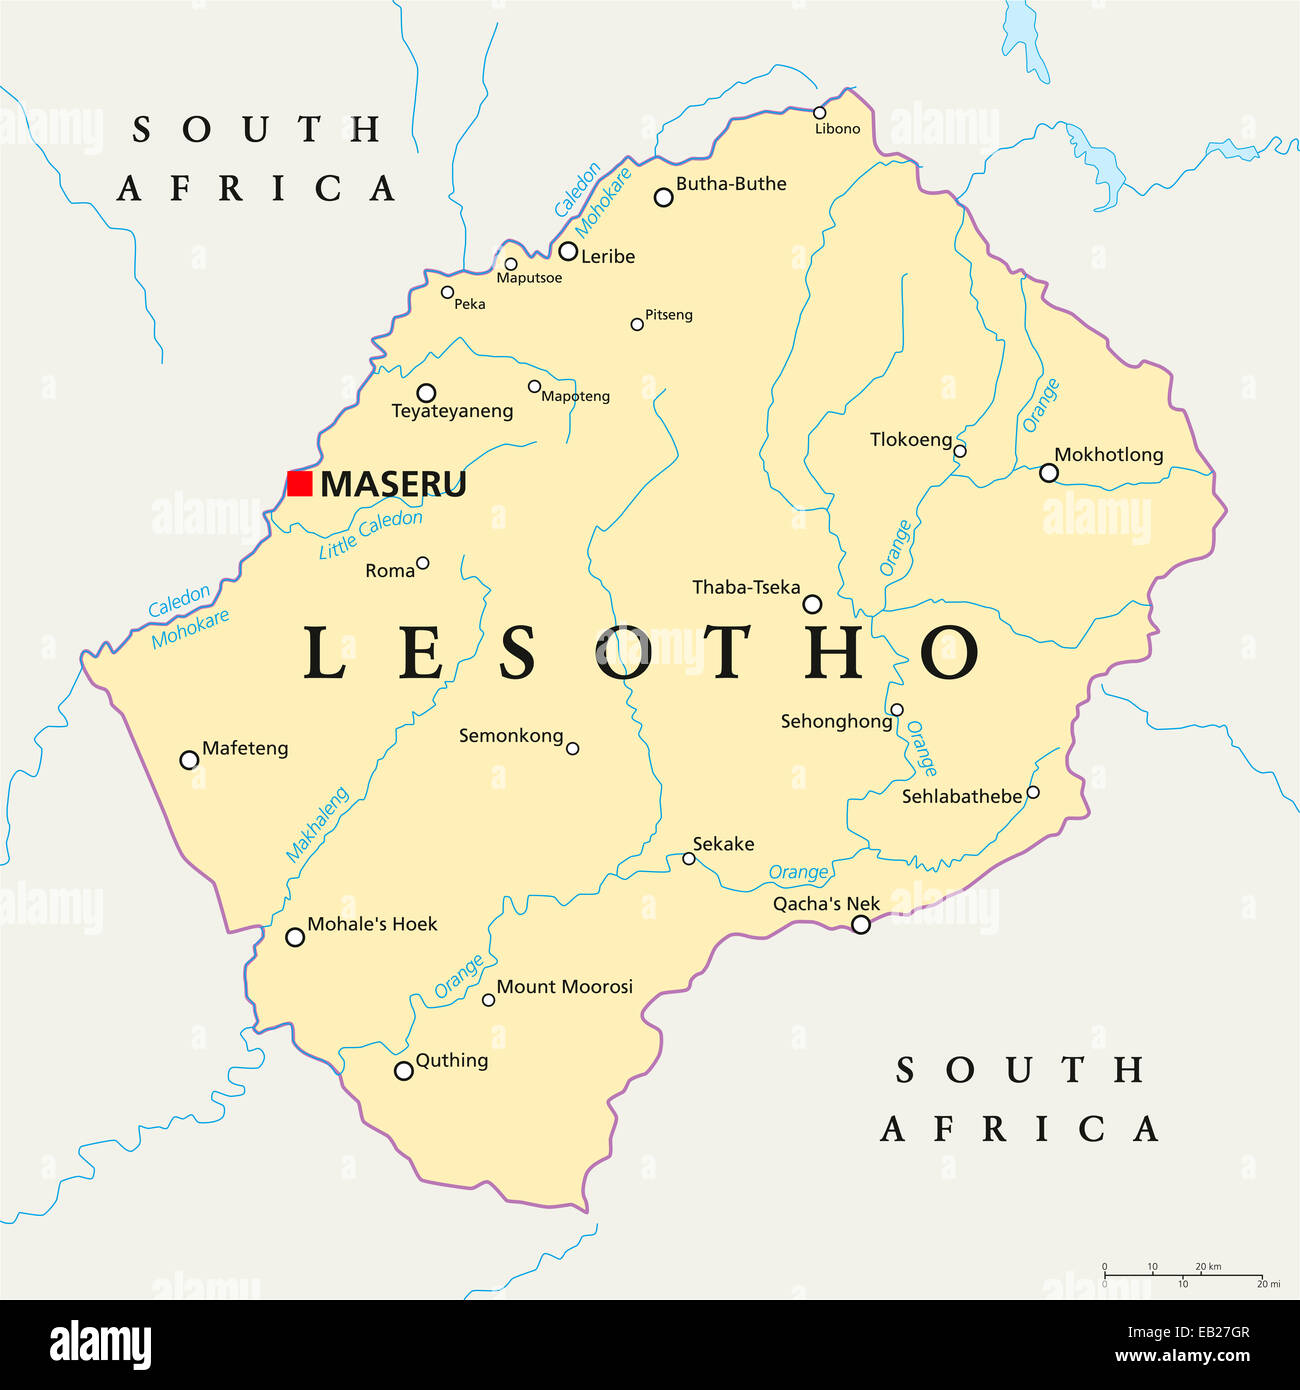 Lesotho Political Map With Capital Maseru National Borders Stock - Lesotho map